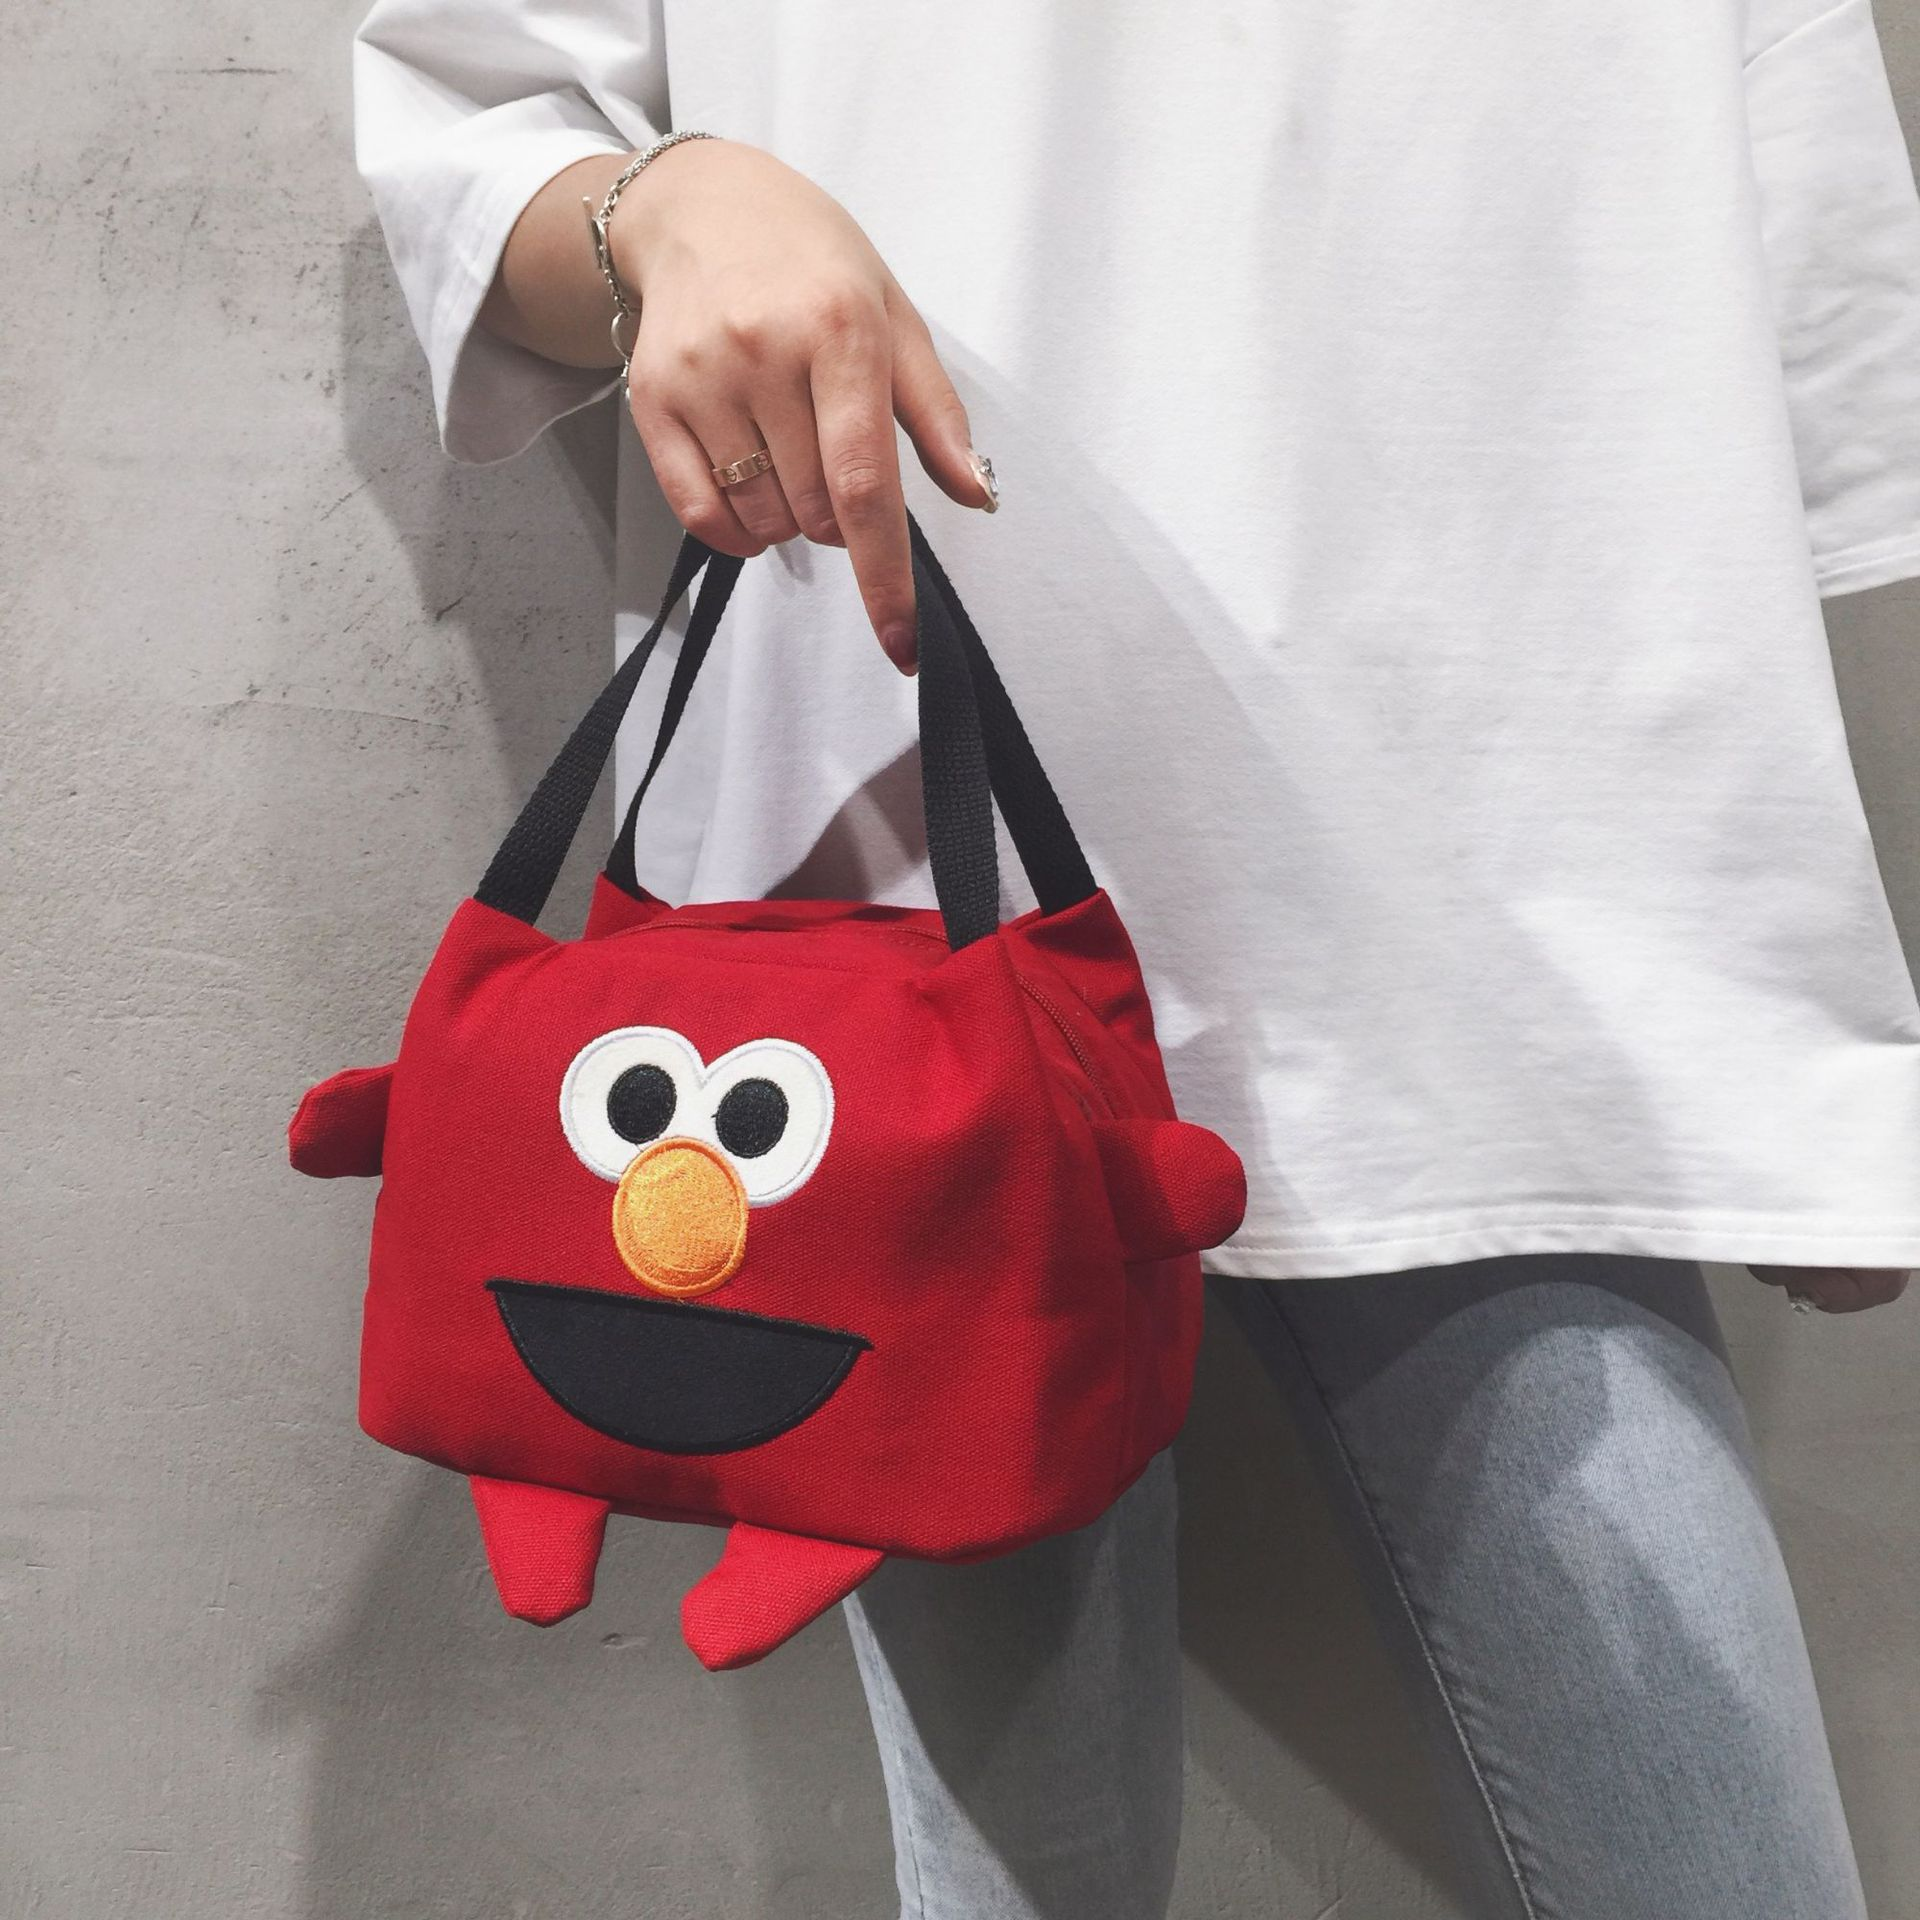 2019 New Style Cute Playful Hand Square Sling Bag Office Workers Students Party Bento Box Bag Large Capacity INS Ugly Meng